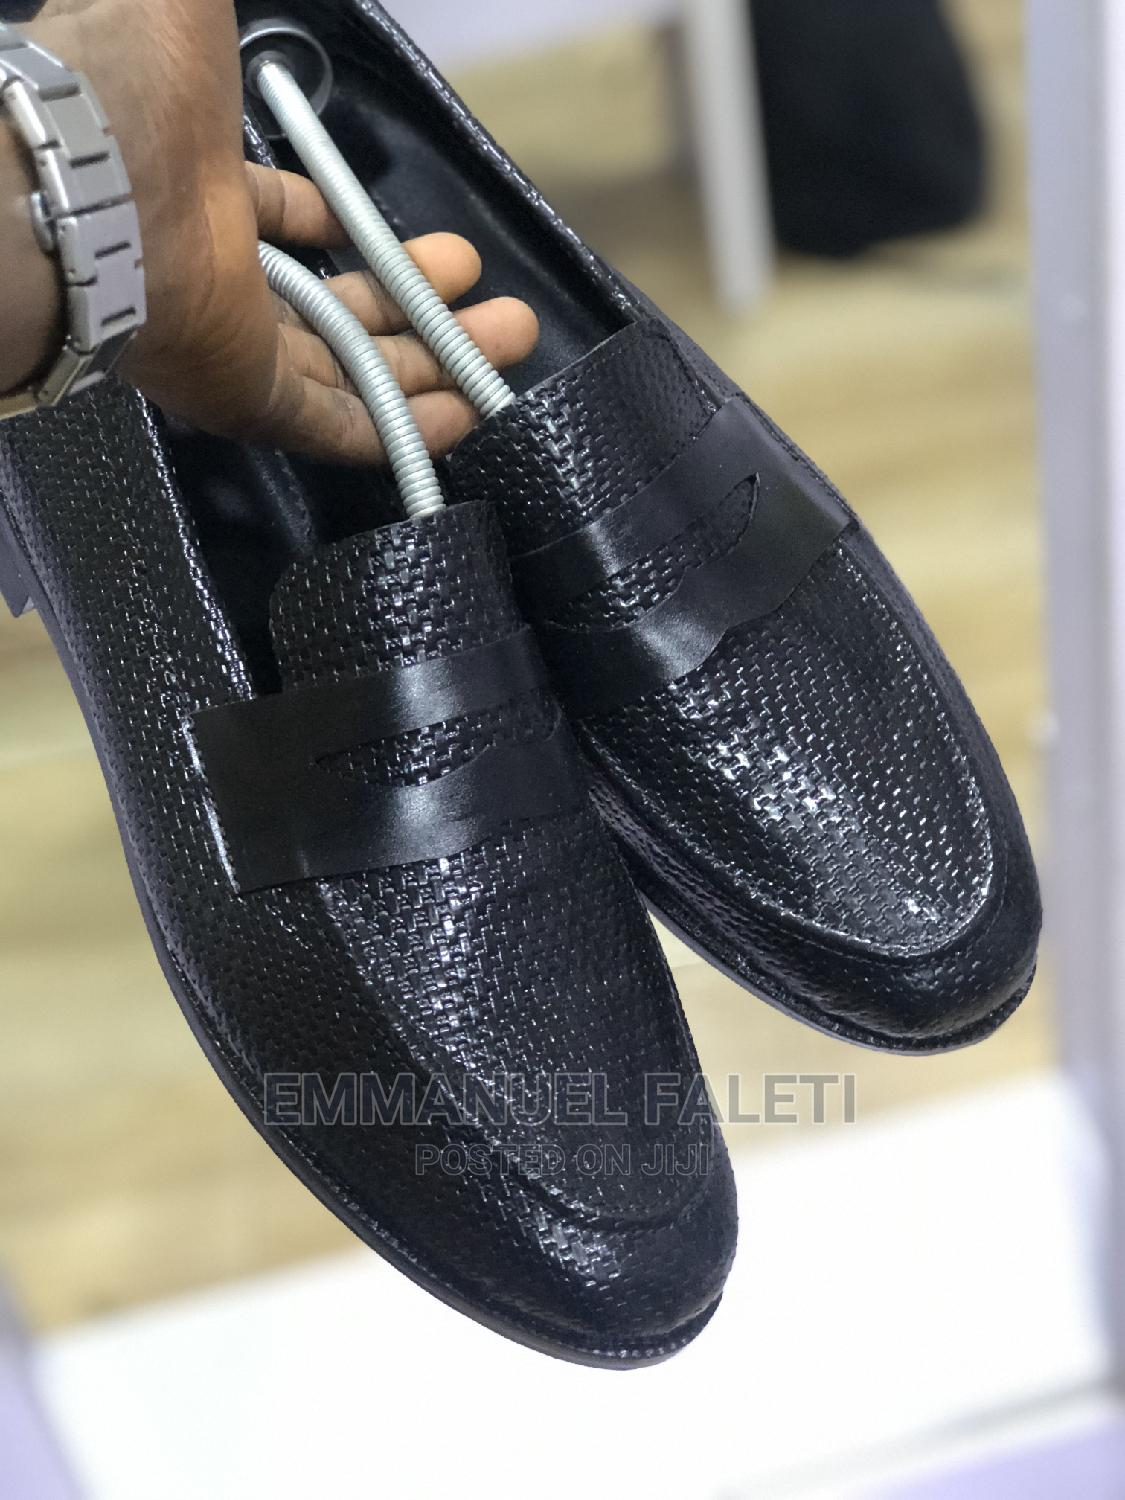 Black Basket Leather Penny Loafers   Shoes for sale in Mushin, Lagos State, Nigeria